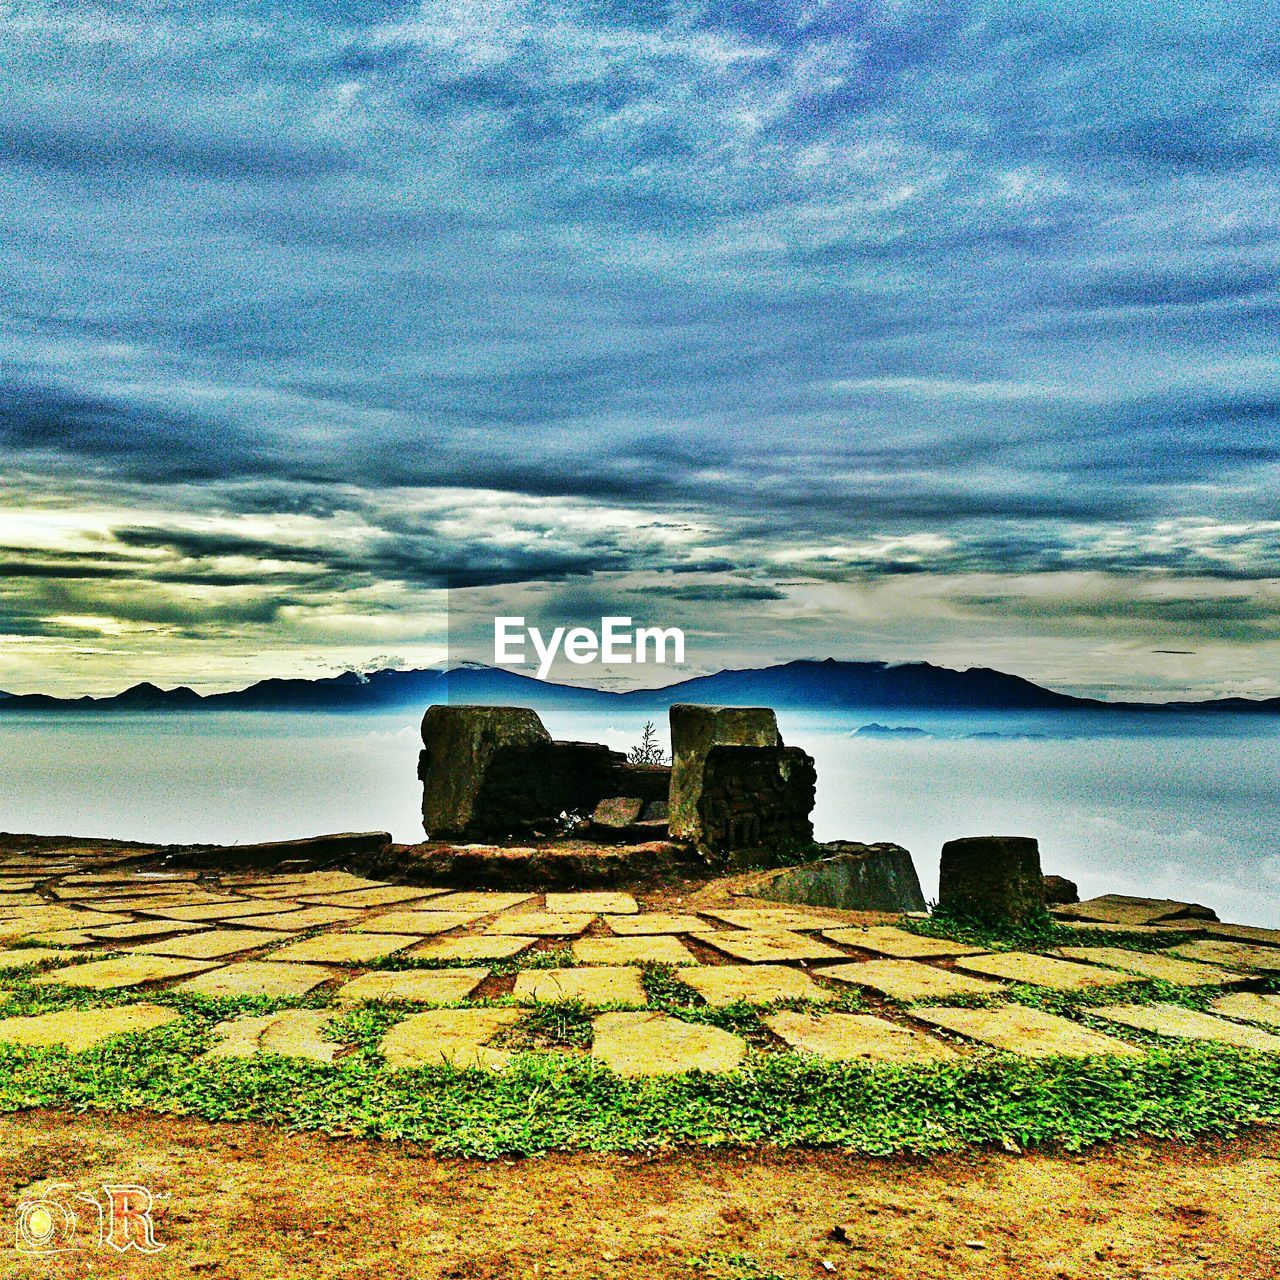 cloud - sky, sky, scenics, nature, sea, history, built structure, no people, rock - object, tranquility, landscape, old ruin, architecture, tranquil scene, beauty in nature, grass, water, day, travel destinations, outdoors, horizon over water, ancient civilization